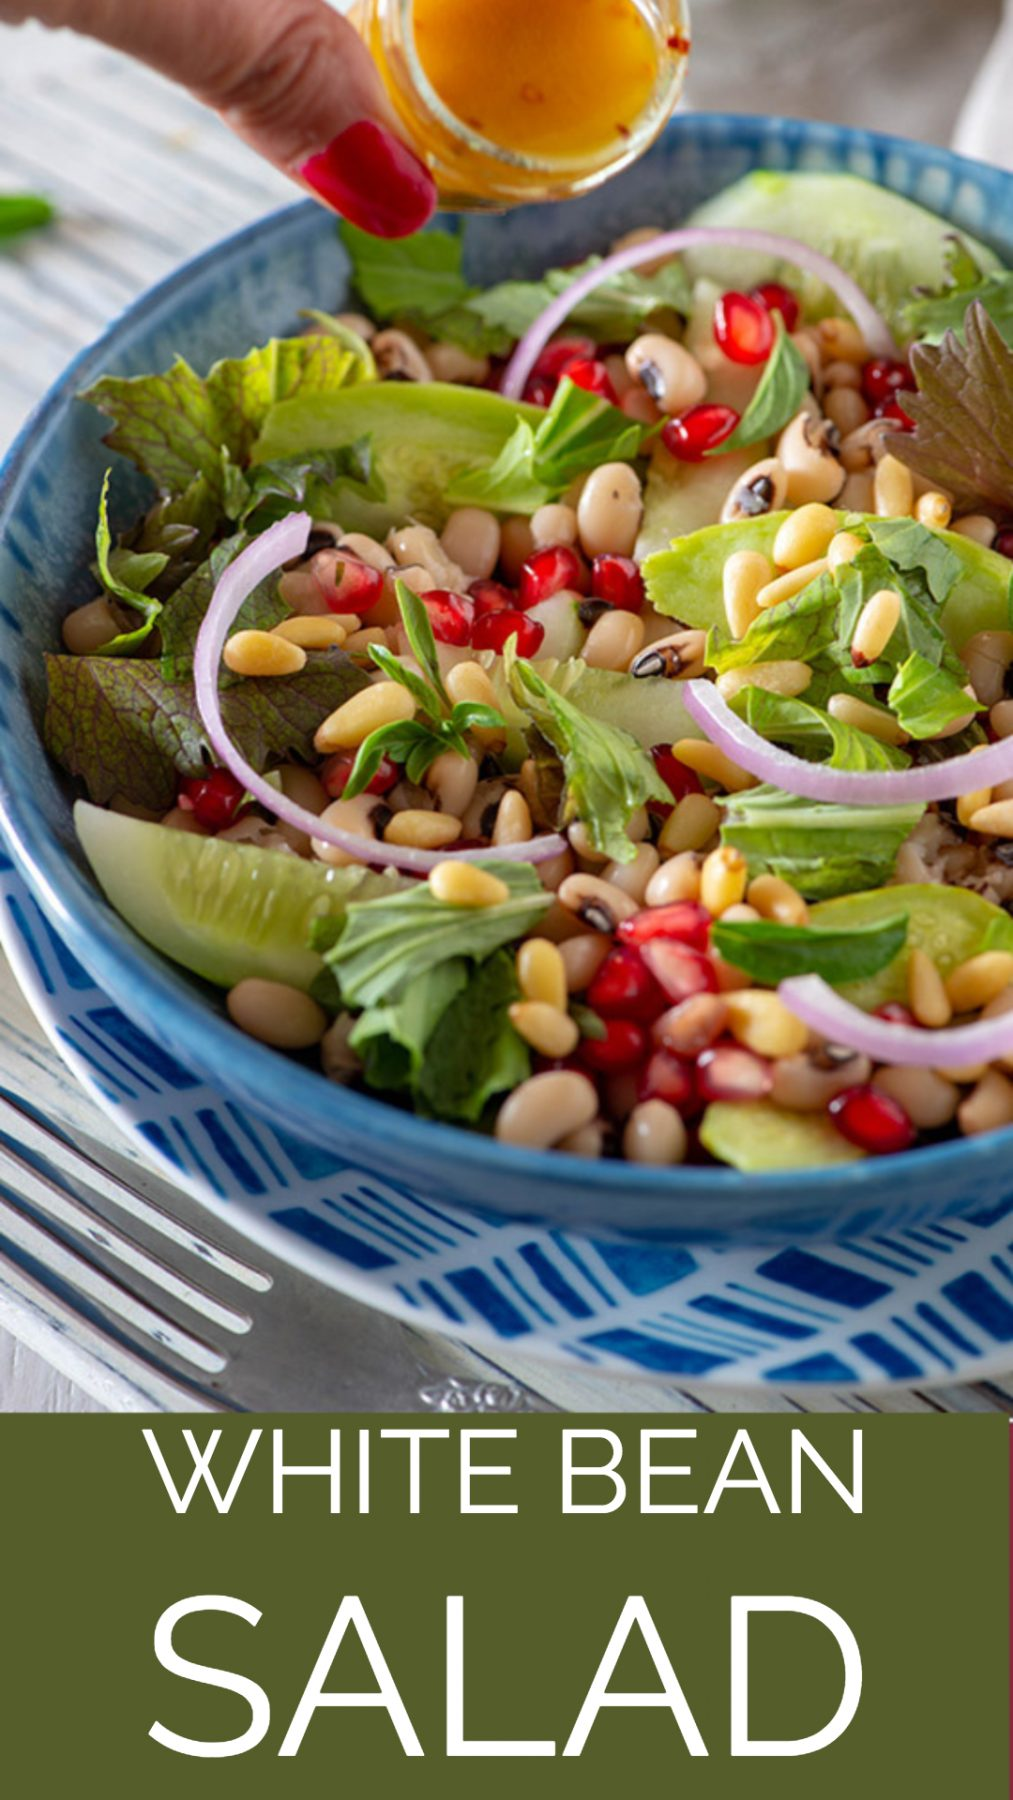 Flavourful white bean salad with black eyed beans in my signature spicy vinaigrette dressing. A variety of summer veggies, the kick from mizuna and Mediterranean inspired flavors, this is our new favorite Summer salad for lunch. One of the best bean salad ever! This is almost perfect for a picnic or packed lunch this summer. #lWhiteBeans #salad #Healthy #glutenfree #keto